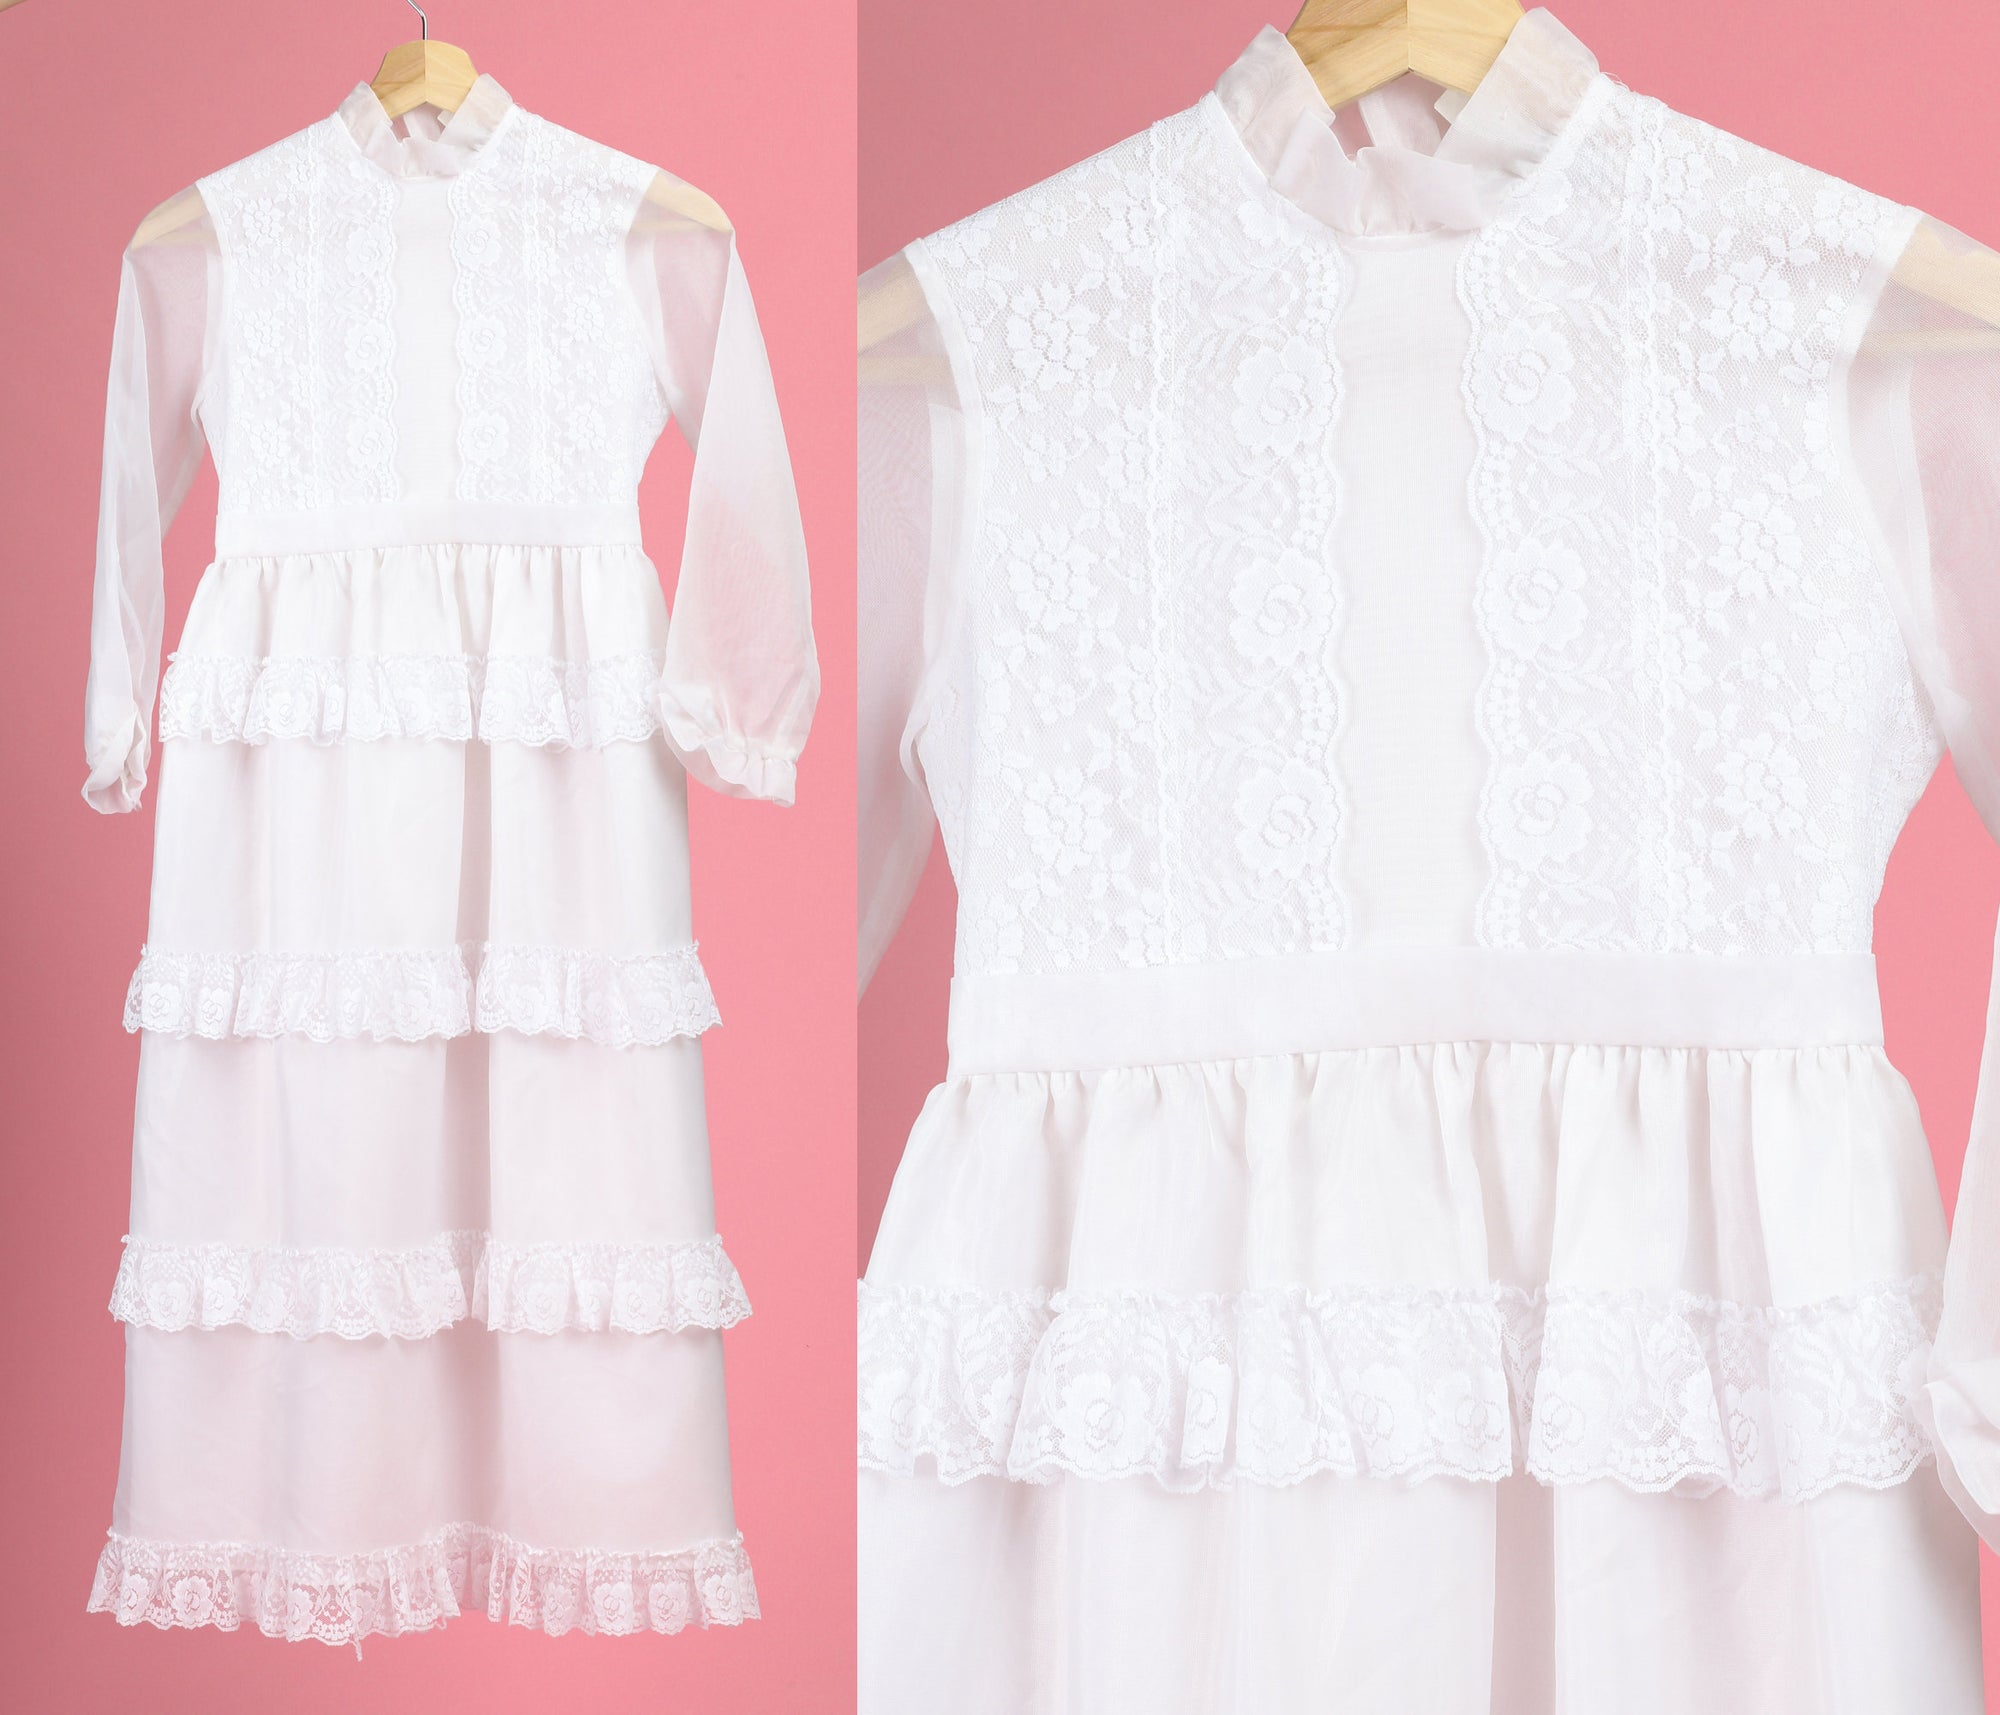 70s Girl's White Lace Formal Dress - Size 8